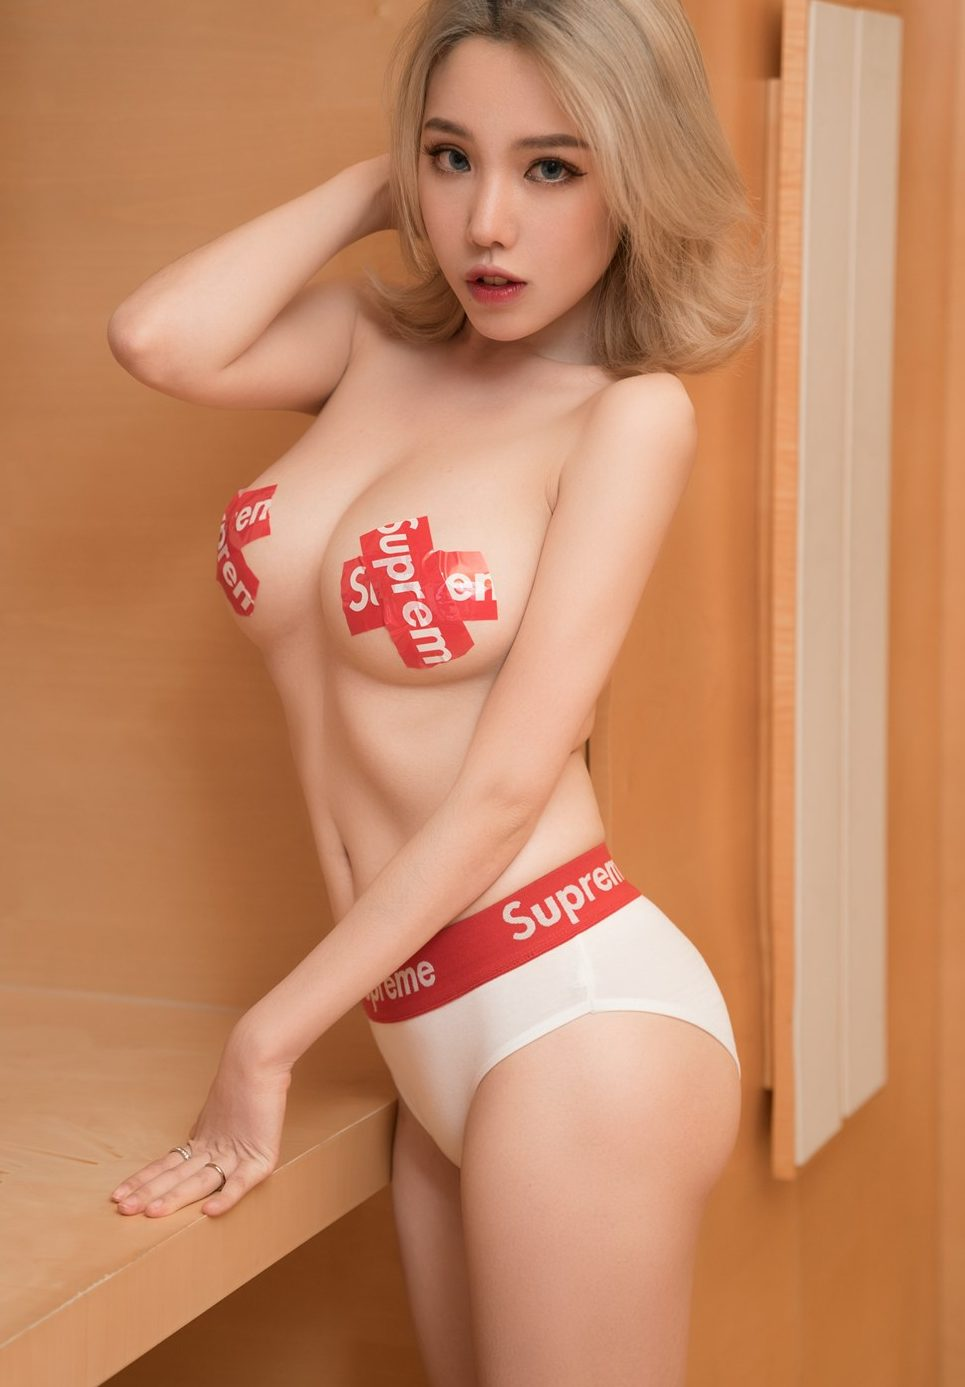 Hot babe of the month: Huang Le Ran